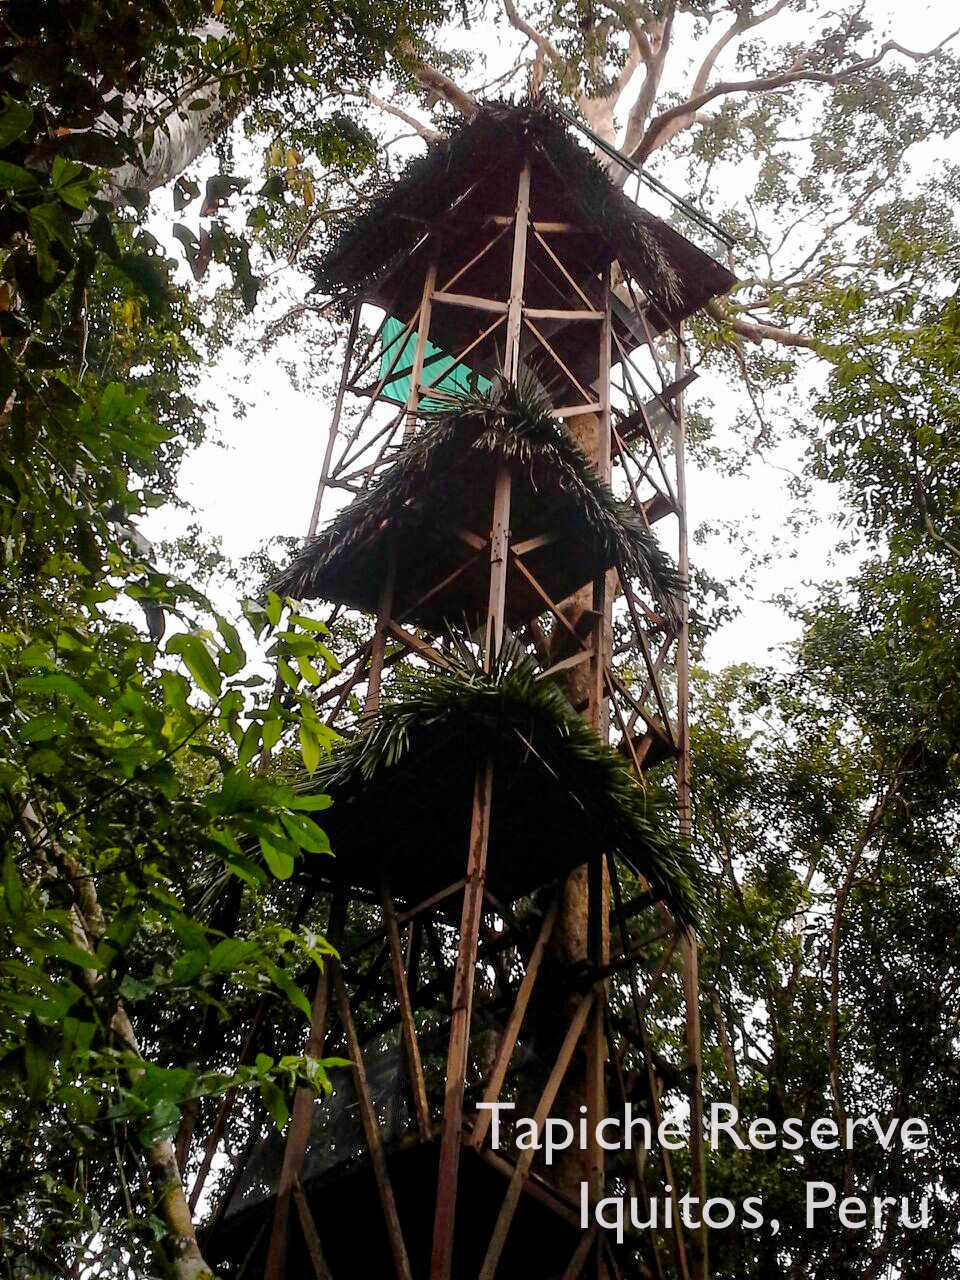 Completed 32m Canopy Observation Tower! Tapiche Reserve Jungle, Peru